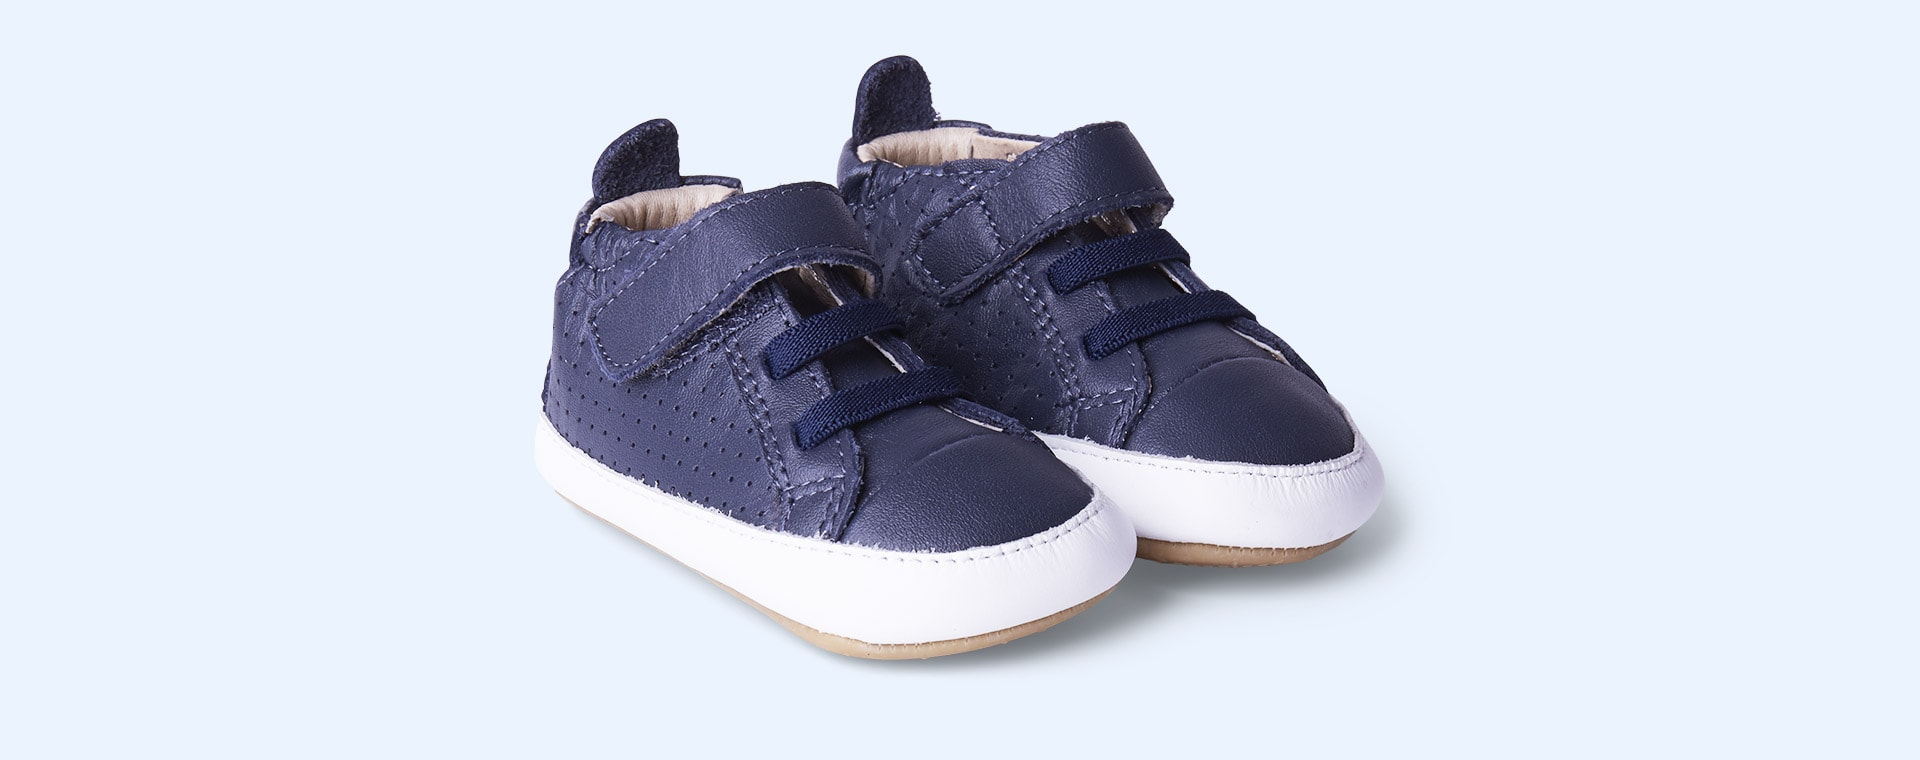 Navy old soles Cheer Bambini Soft Sole Boot